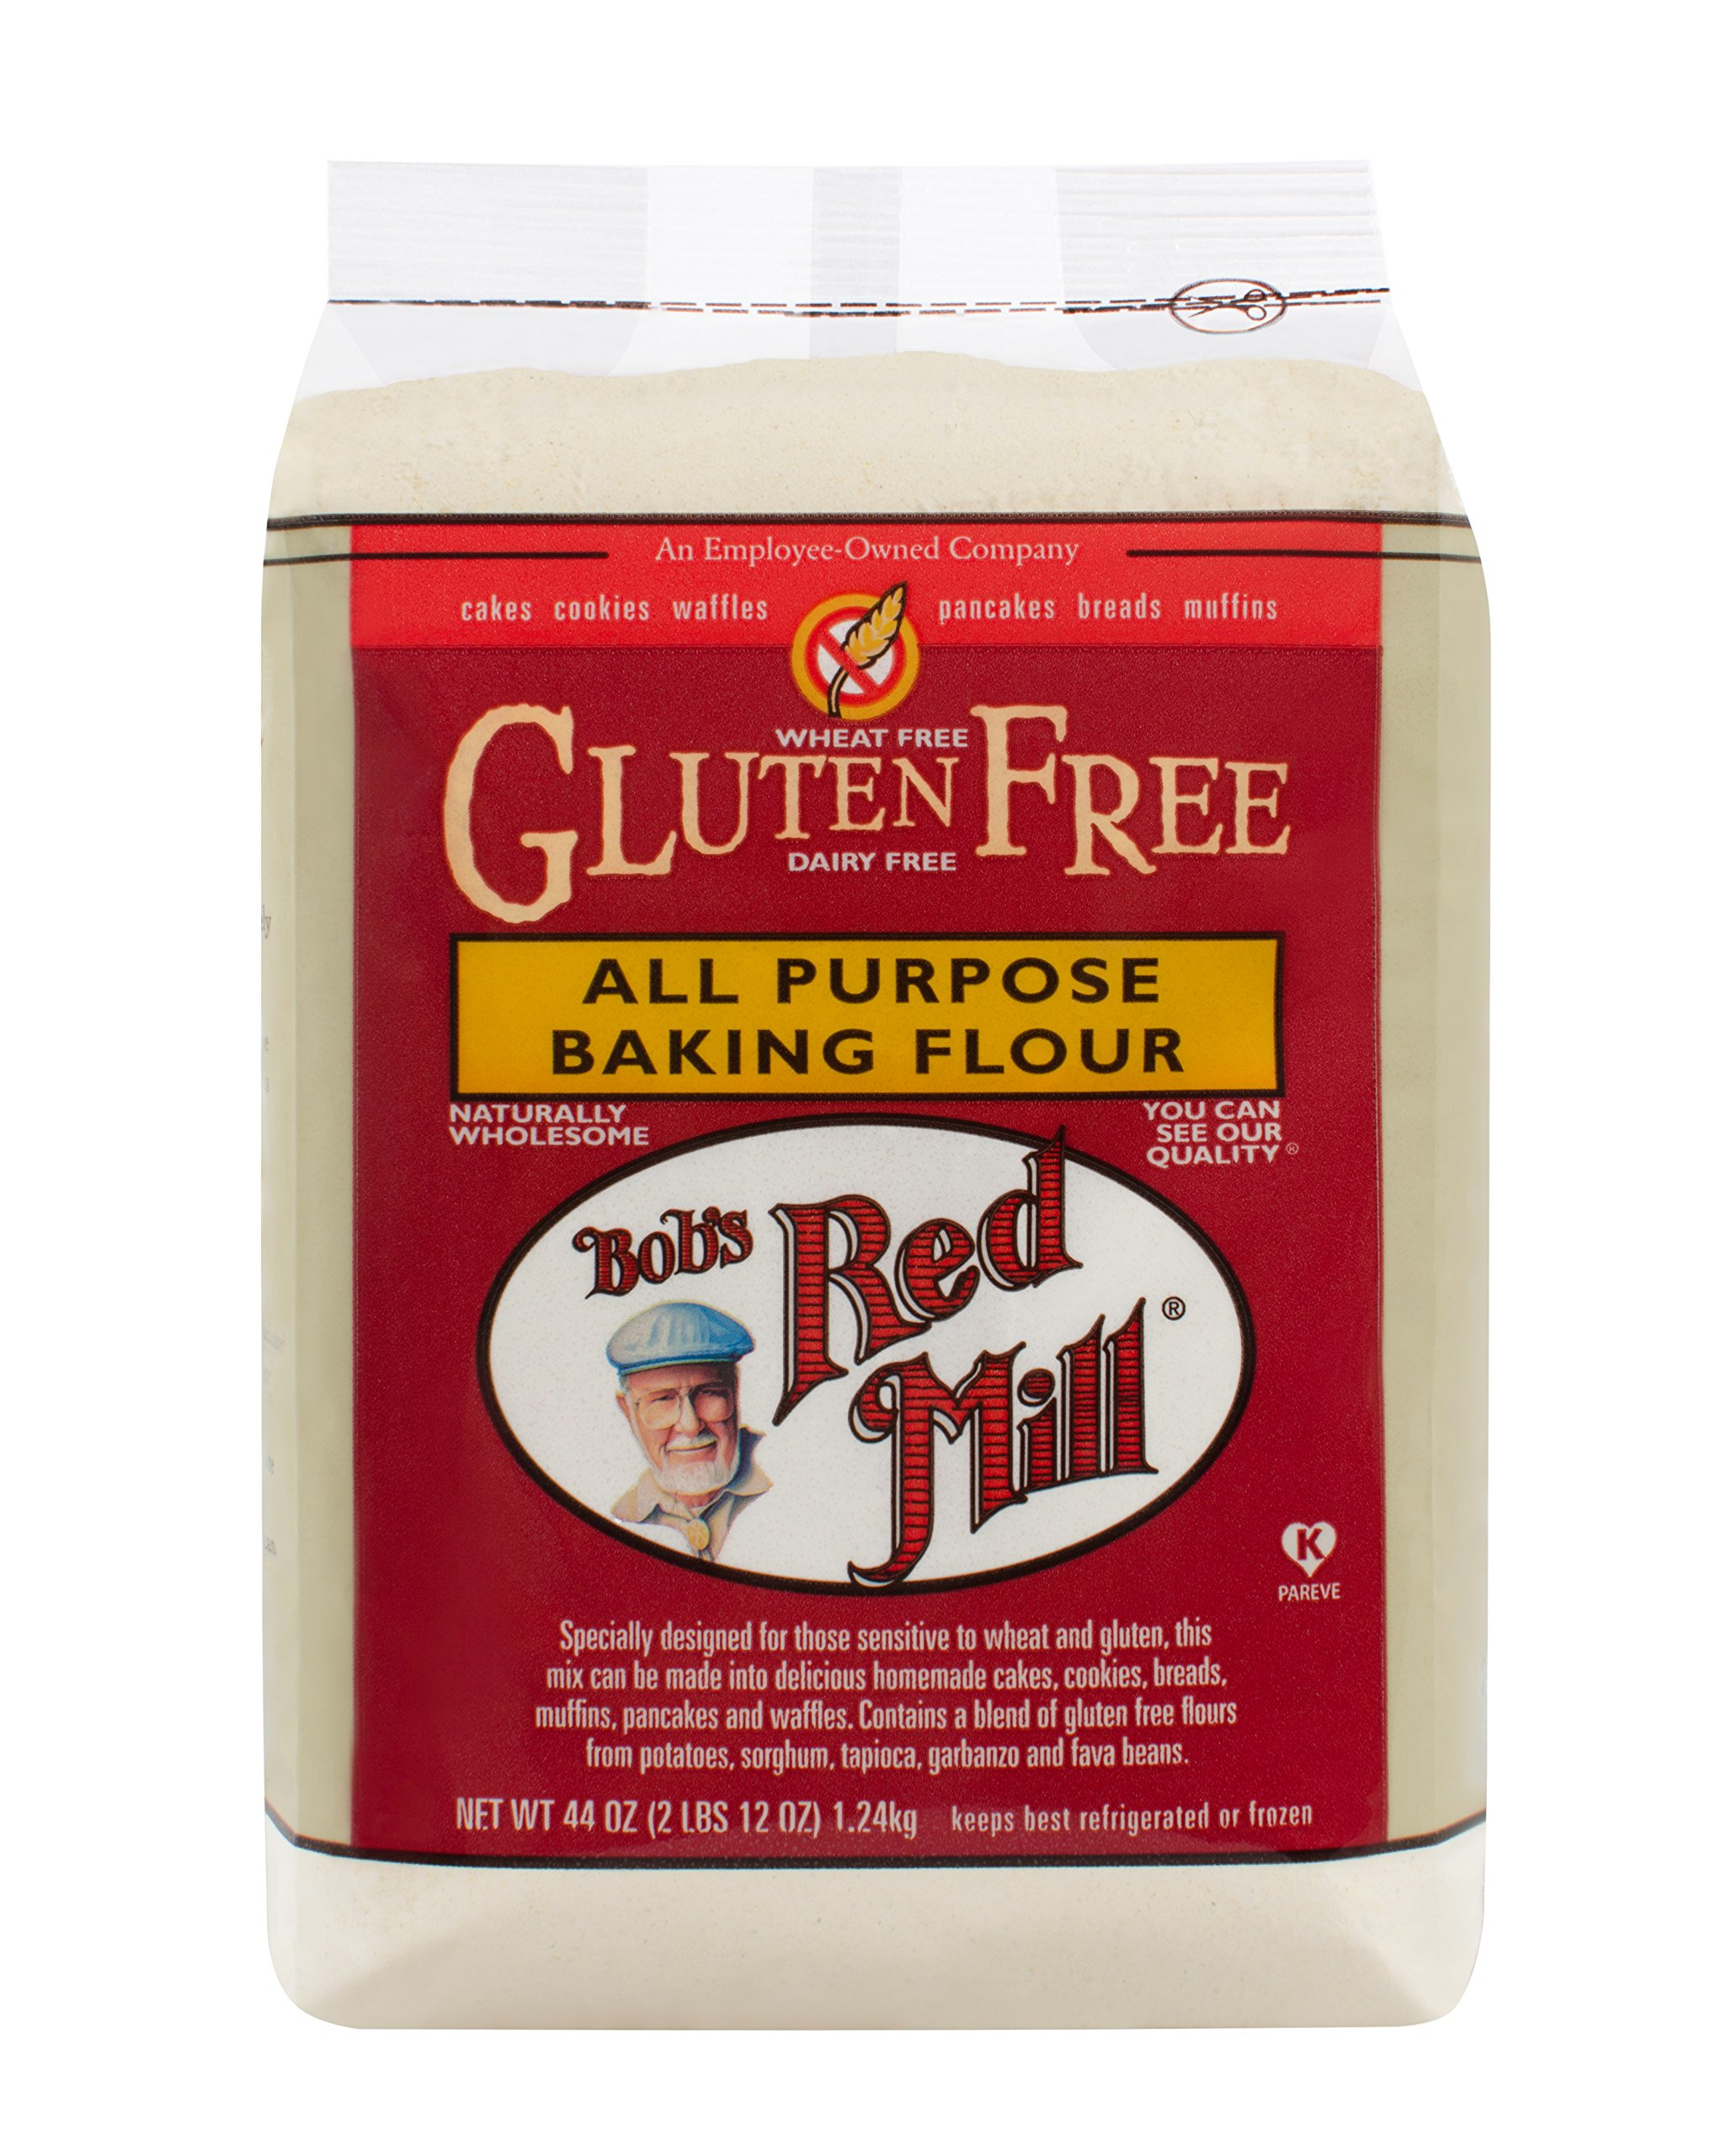 Bob's Red Mill Gluten Free All Purpose Baking Flour, 44 Oz (4 Pack) by Bob's Red Mill